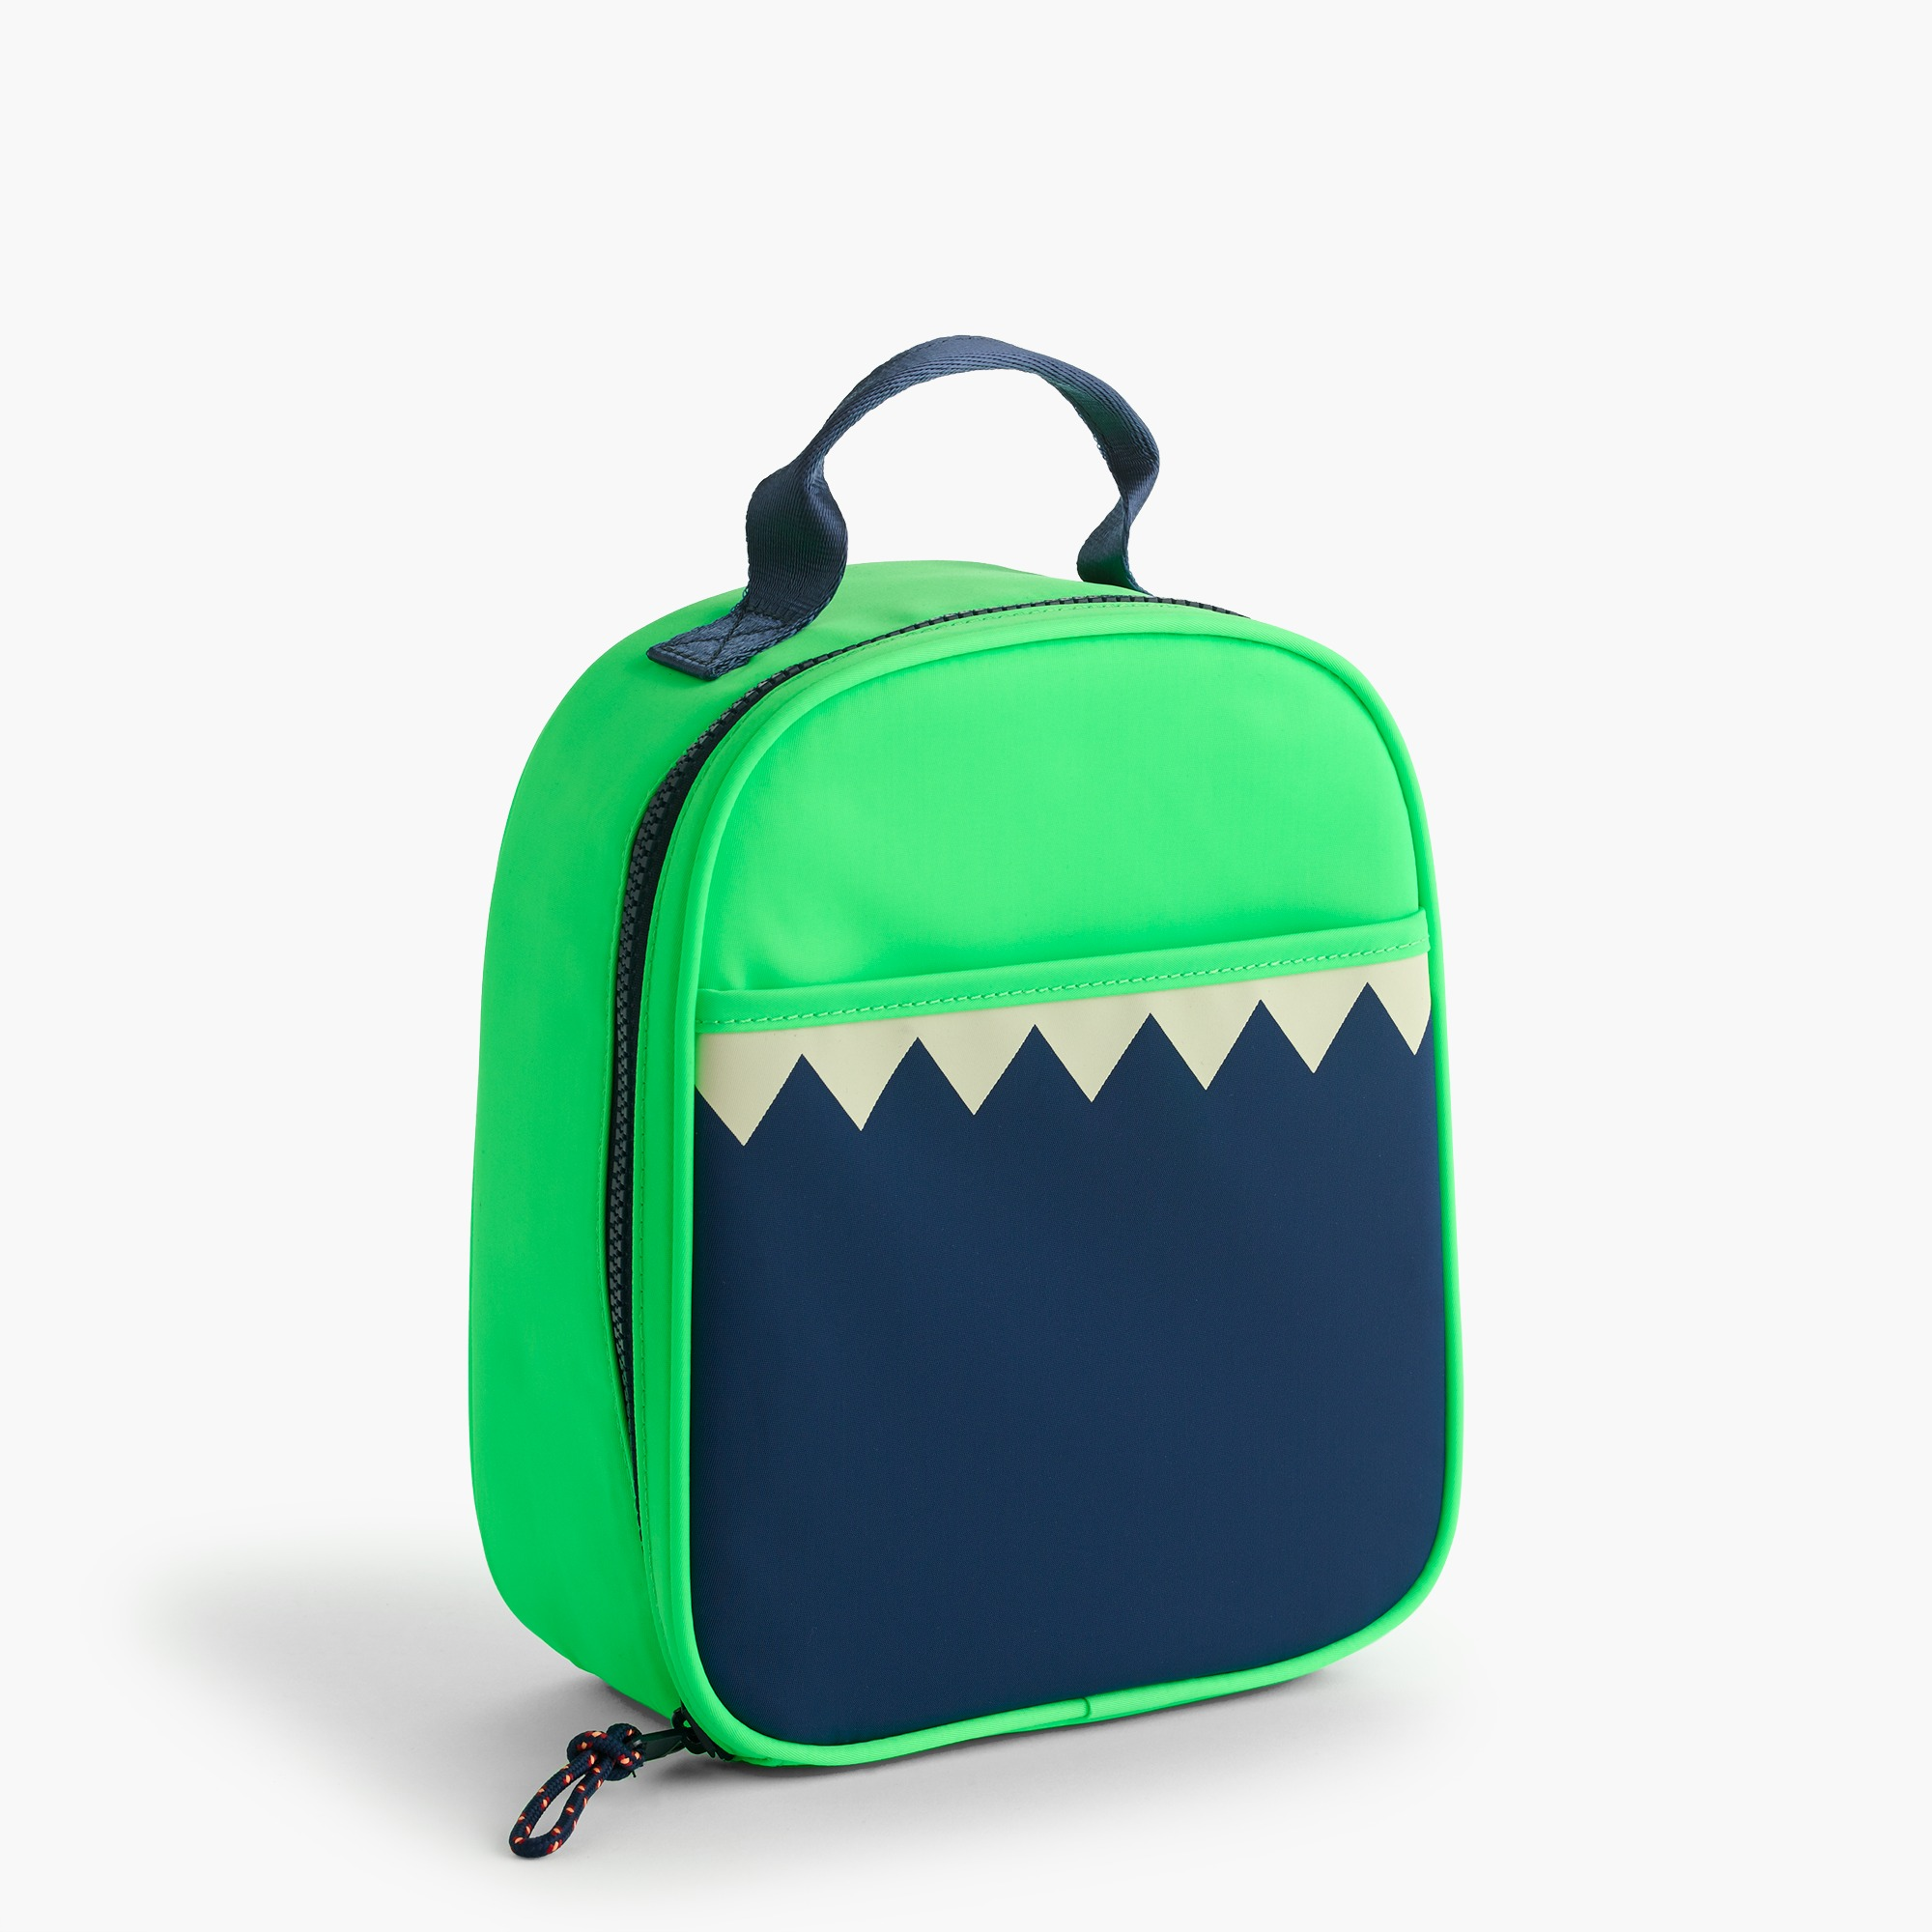 Kids' glow-in-the-dark snaggletooth monster lunch box